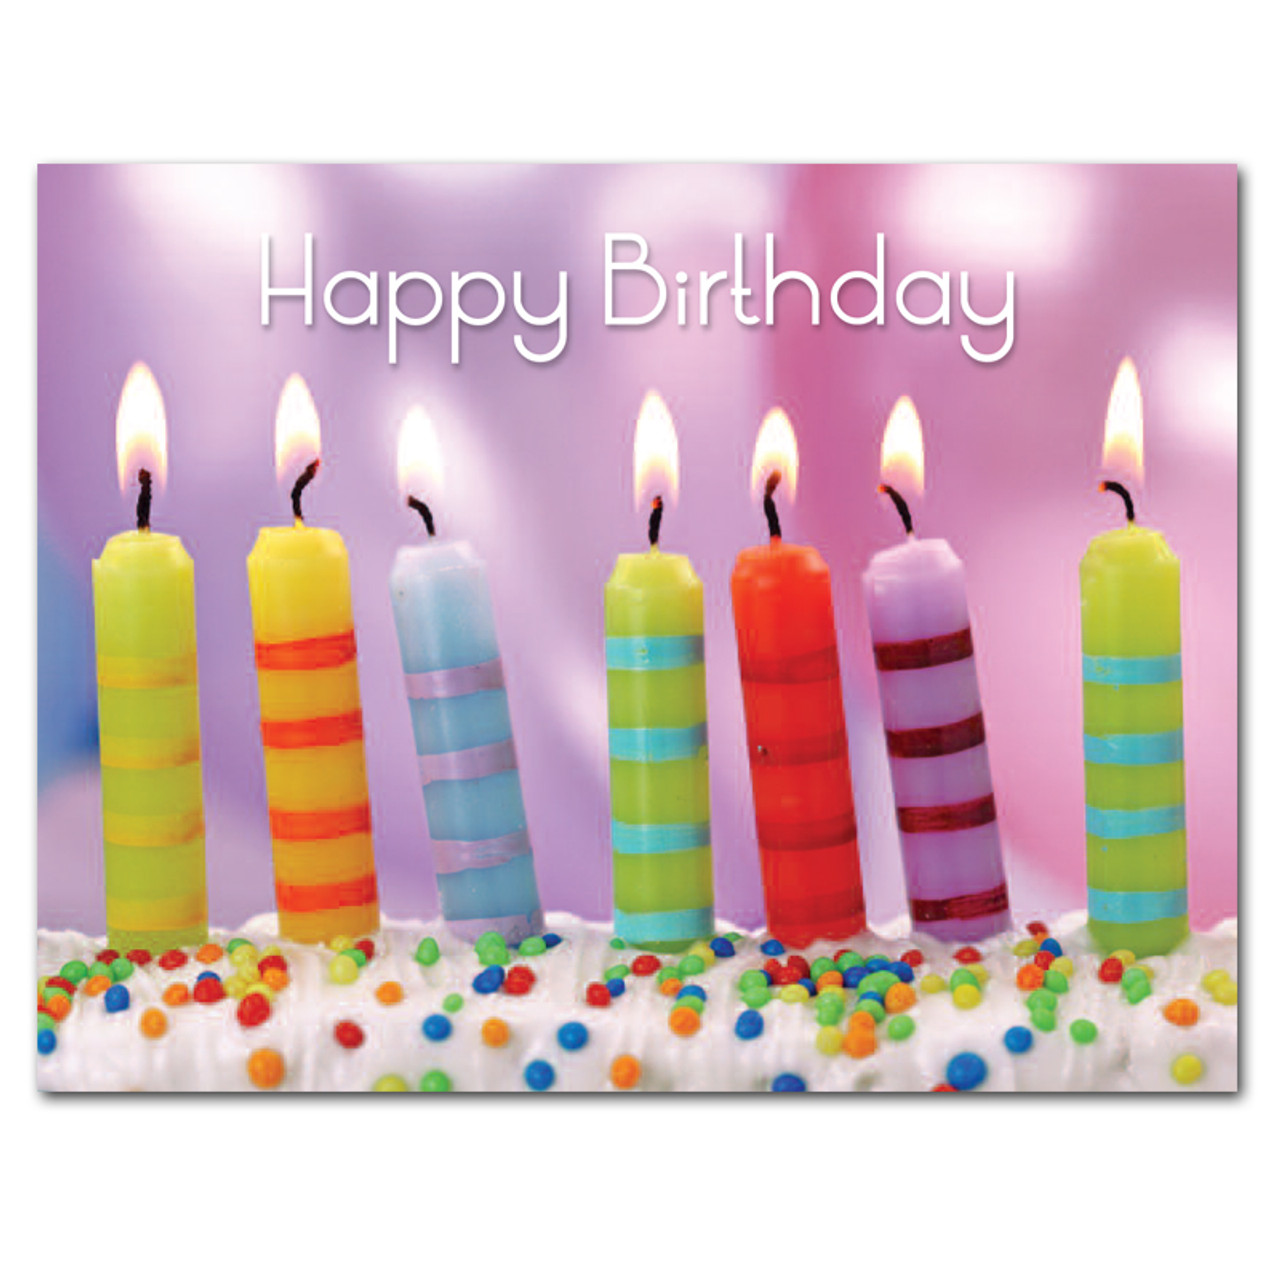 Boxed Birthday Postcards For Business And School Use Striped Candles